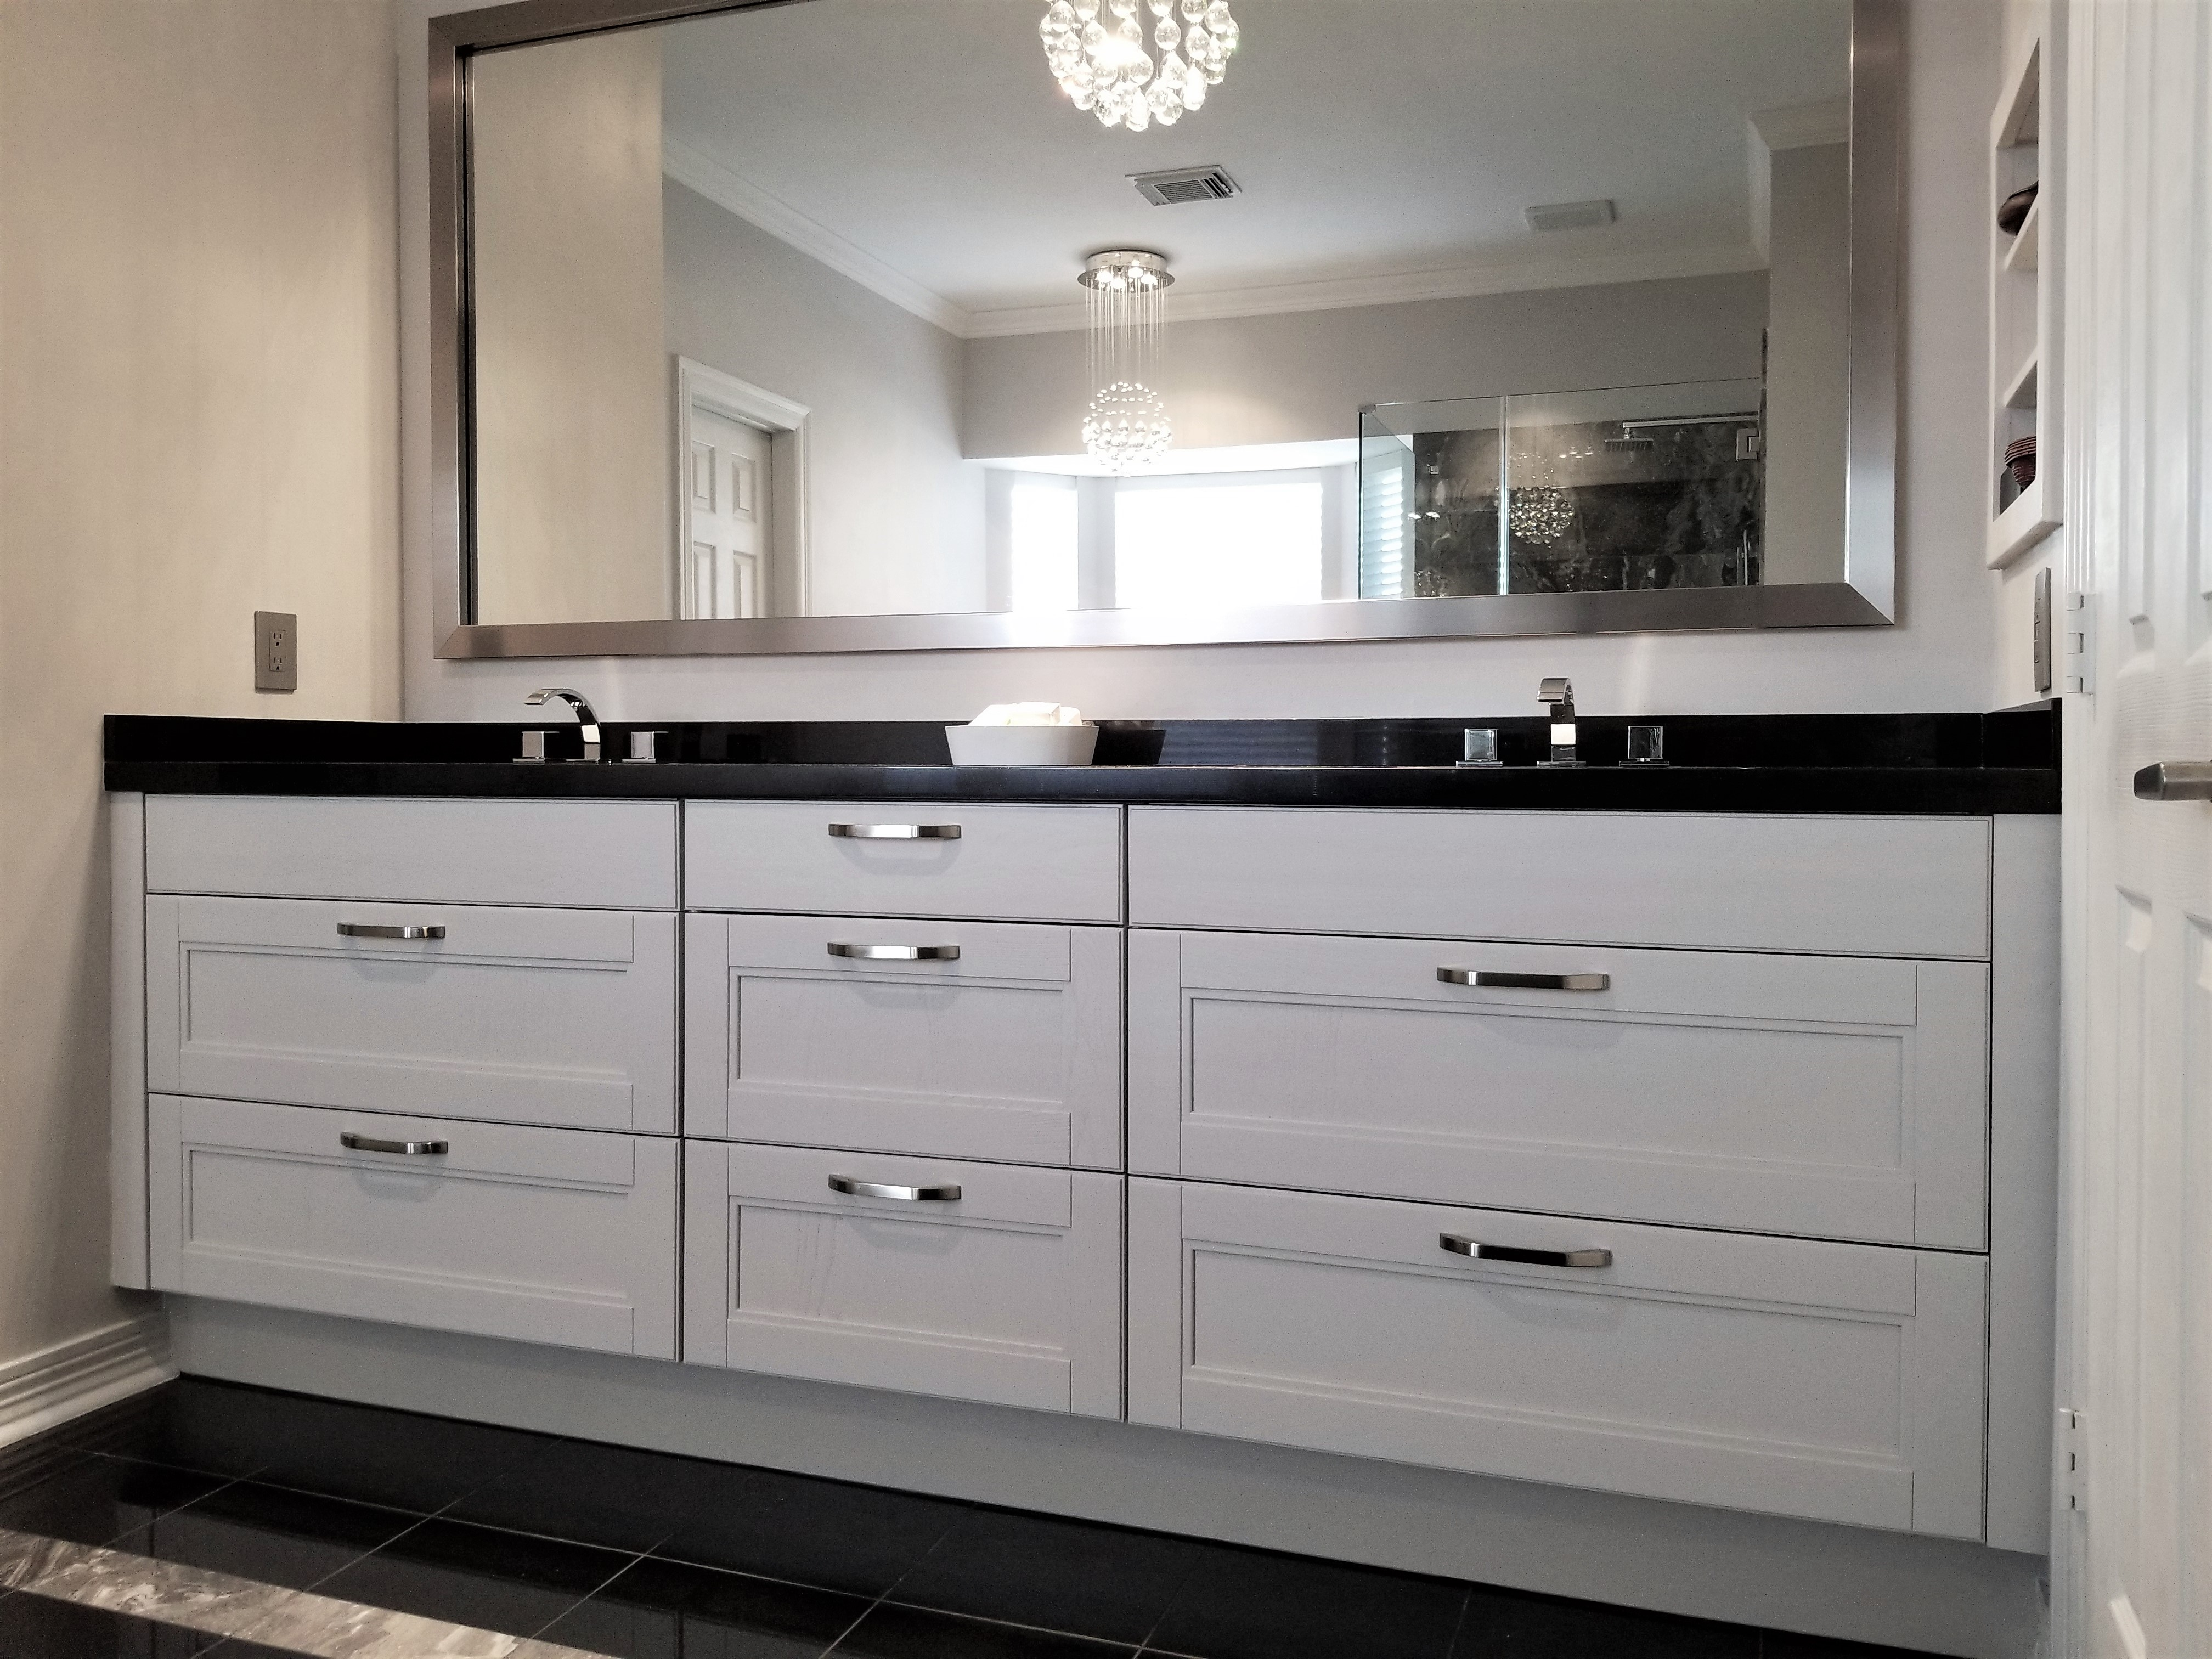 Bath and Kitchen Remodeling Houston